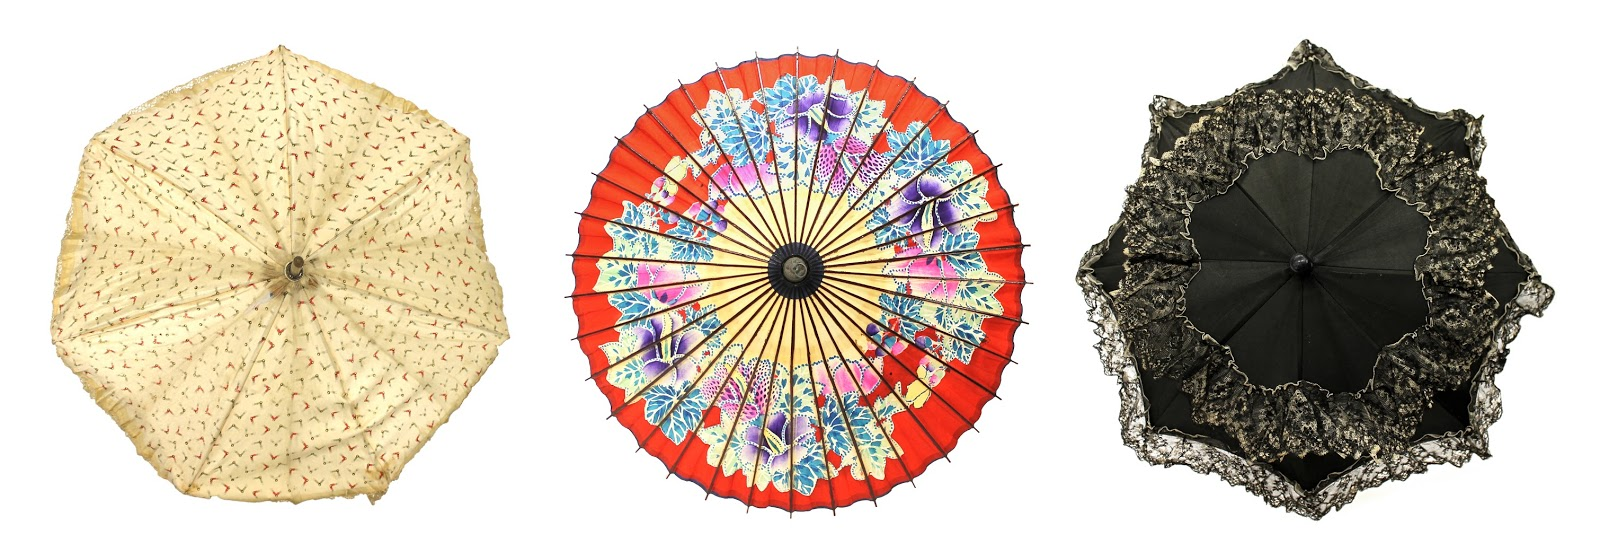 Fair Weather Friends: 19th Century Parasols